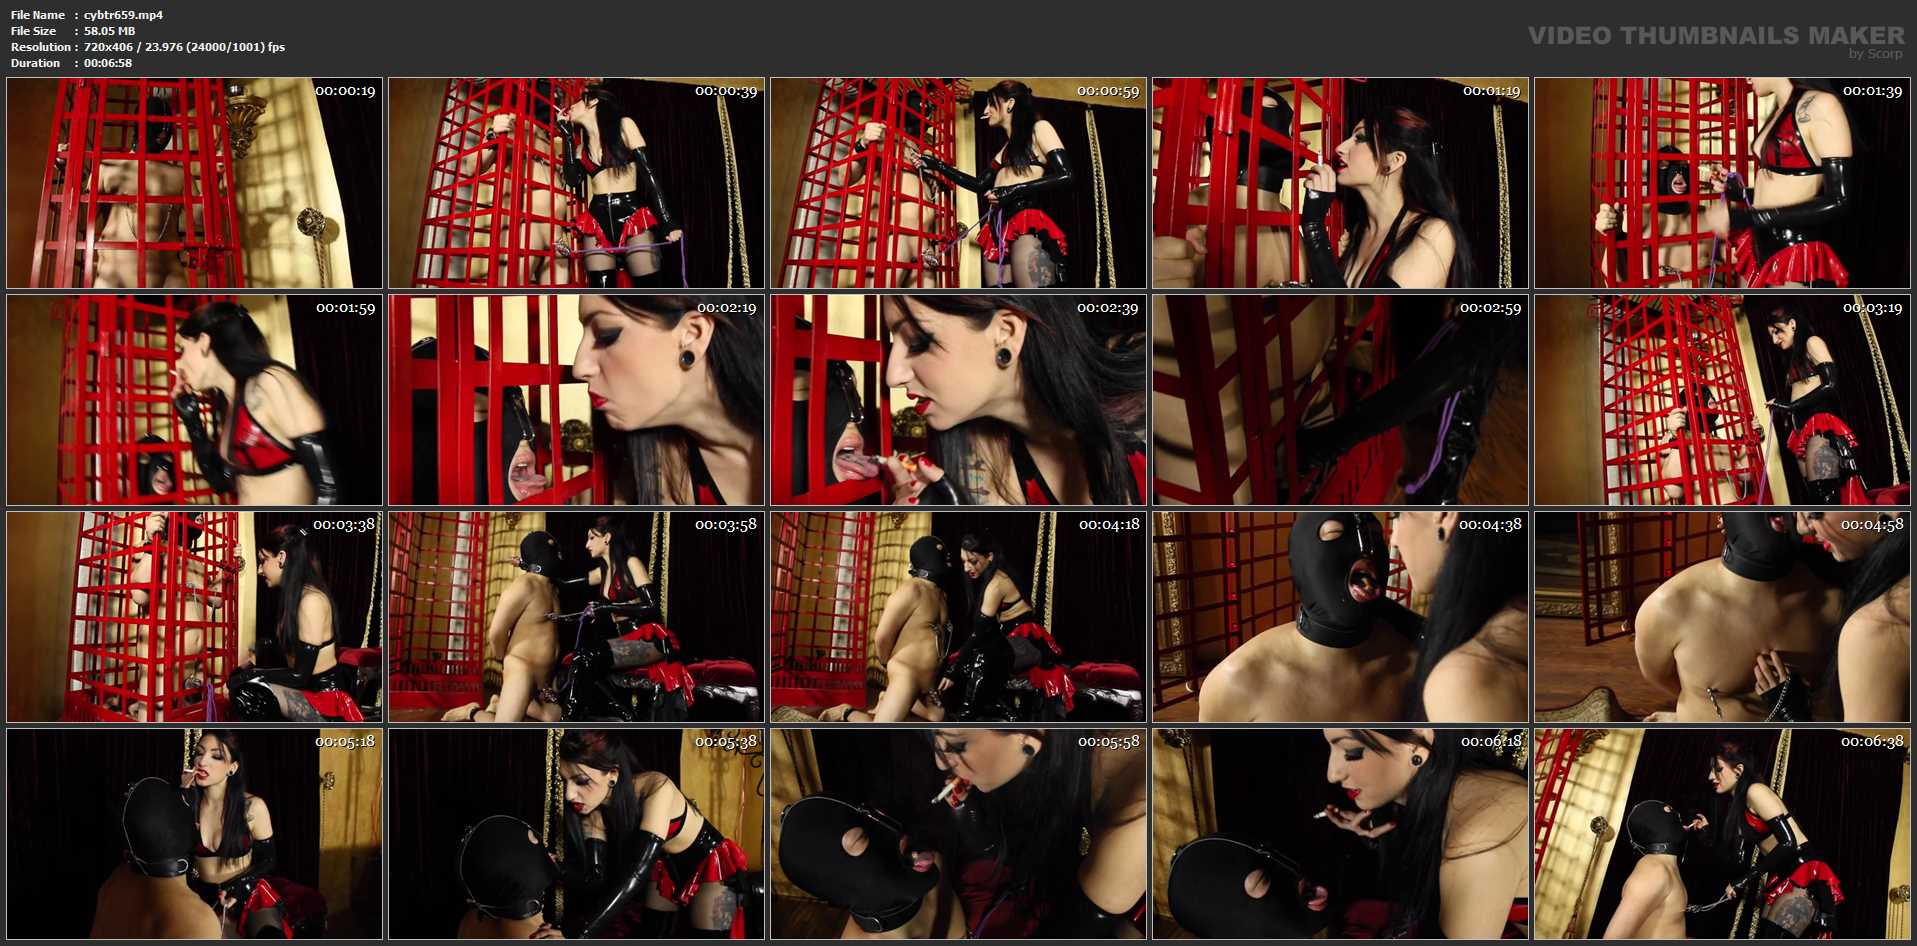 Mistress Cybill Troy In Scene: Does It Burn - CYBILL TROY'S DTLA DOMINAS / CYBILLTROY - SD/406p/MP4